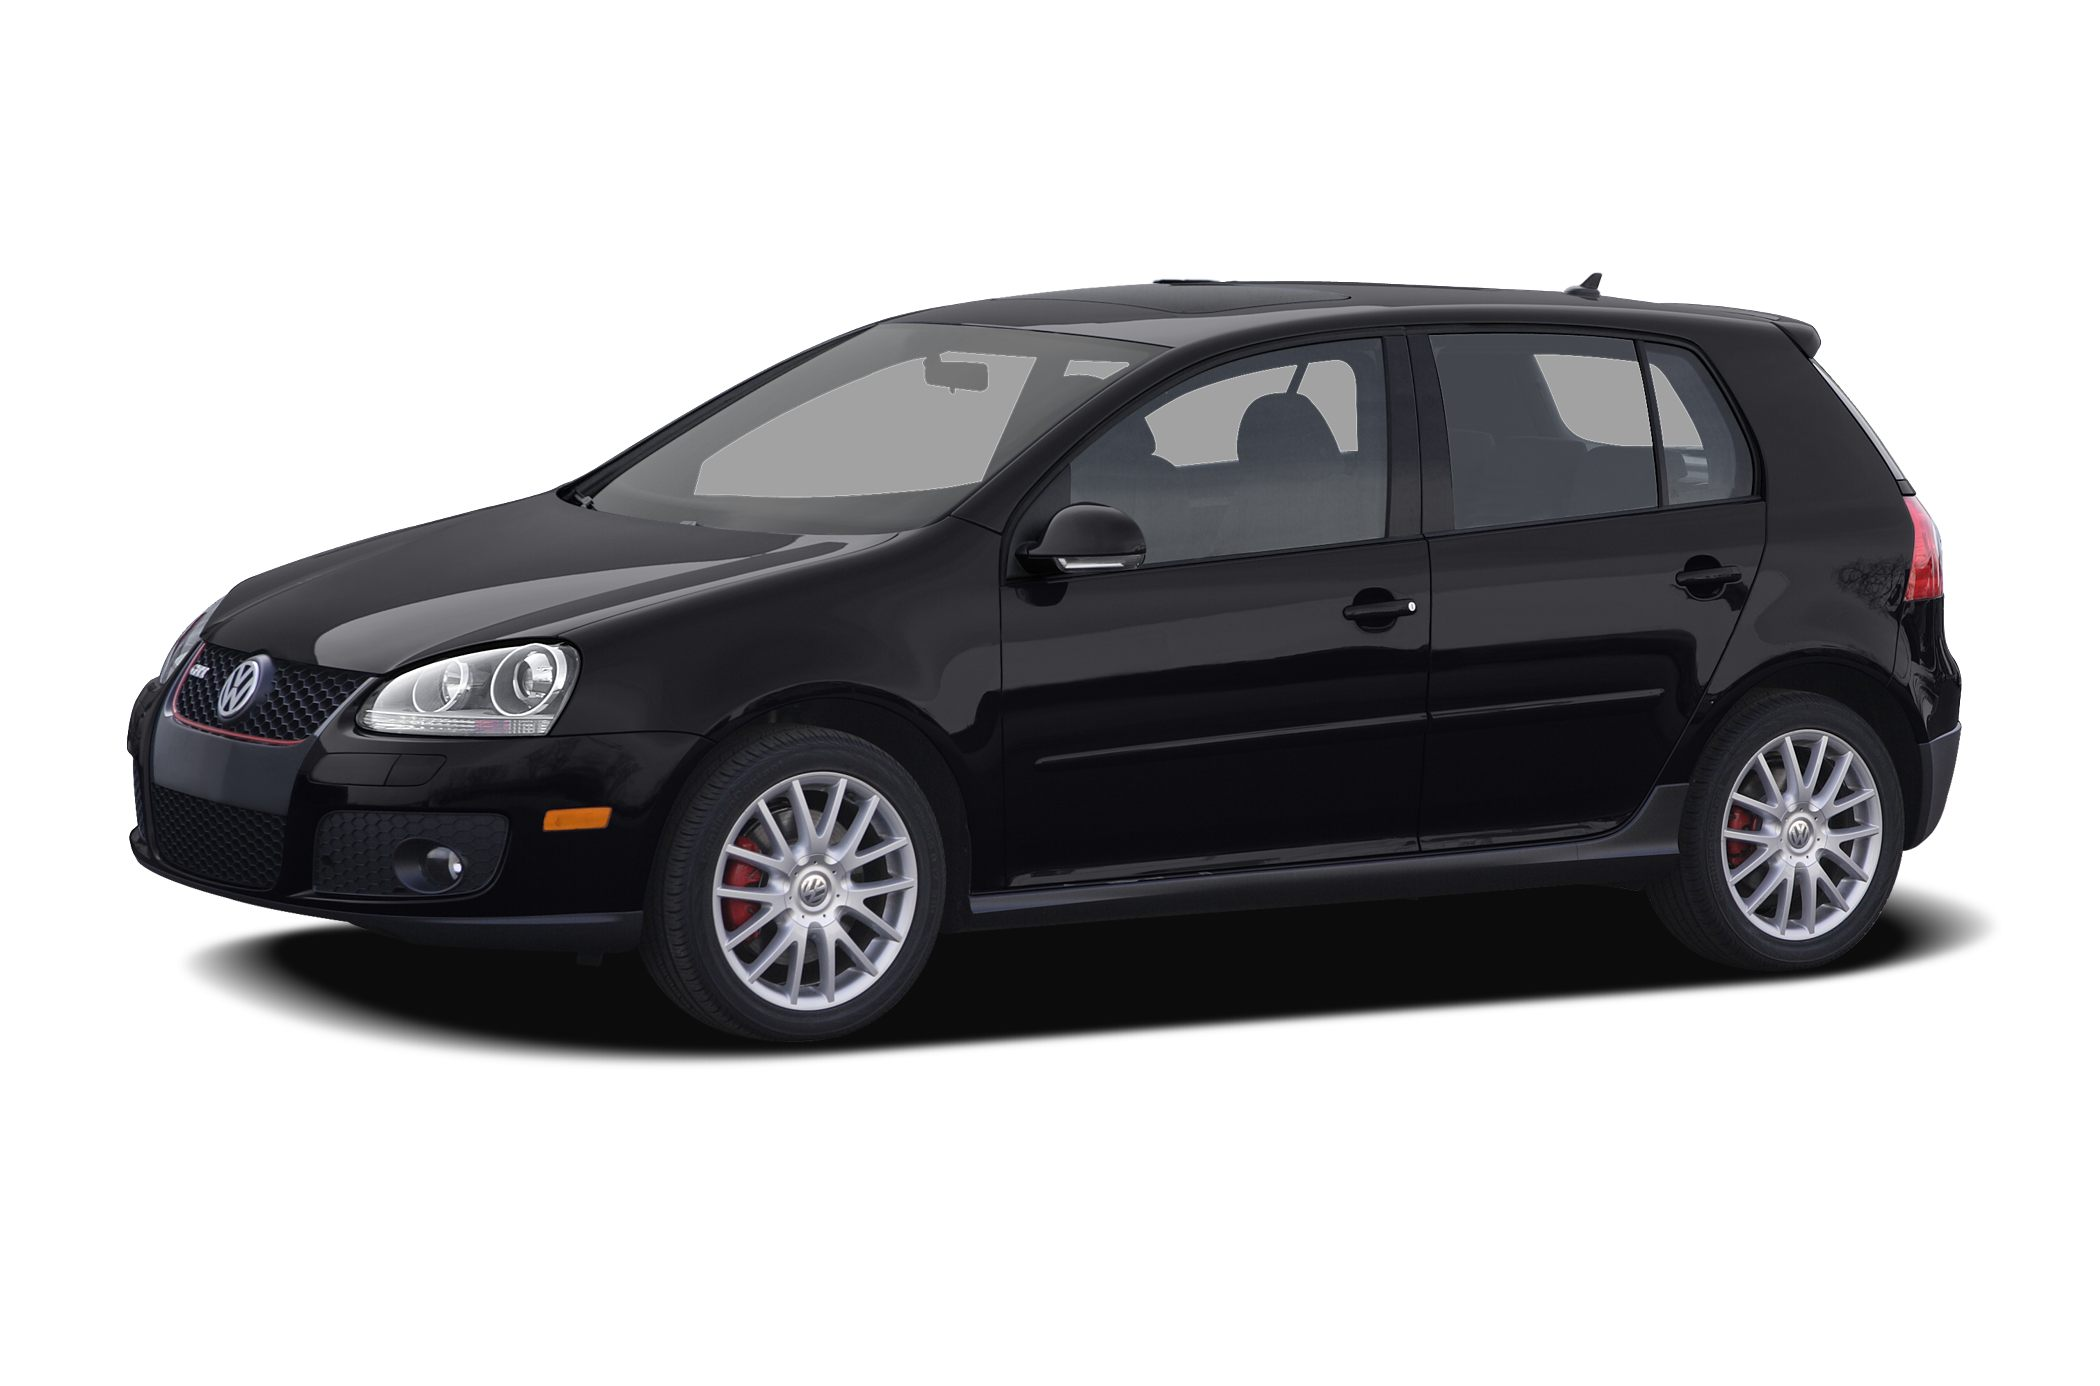 2007 Volkswagen GTI Hatchback for sale in Alexandria for $0 with 121,097 miles